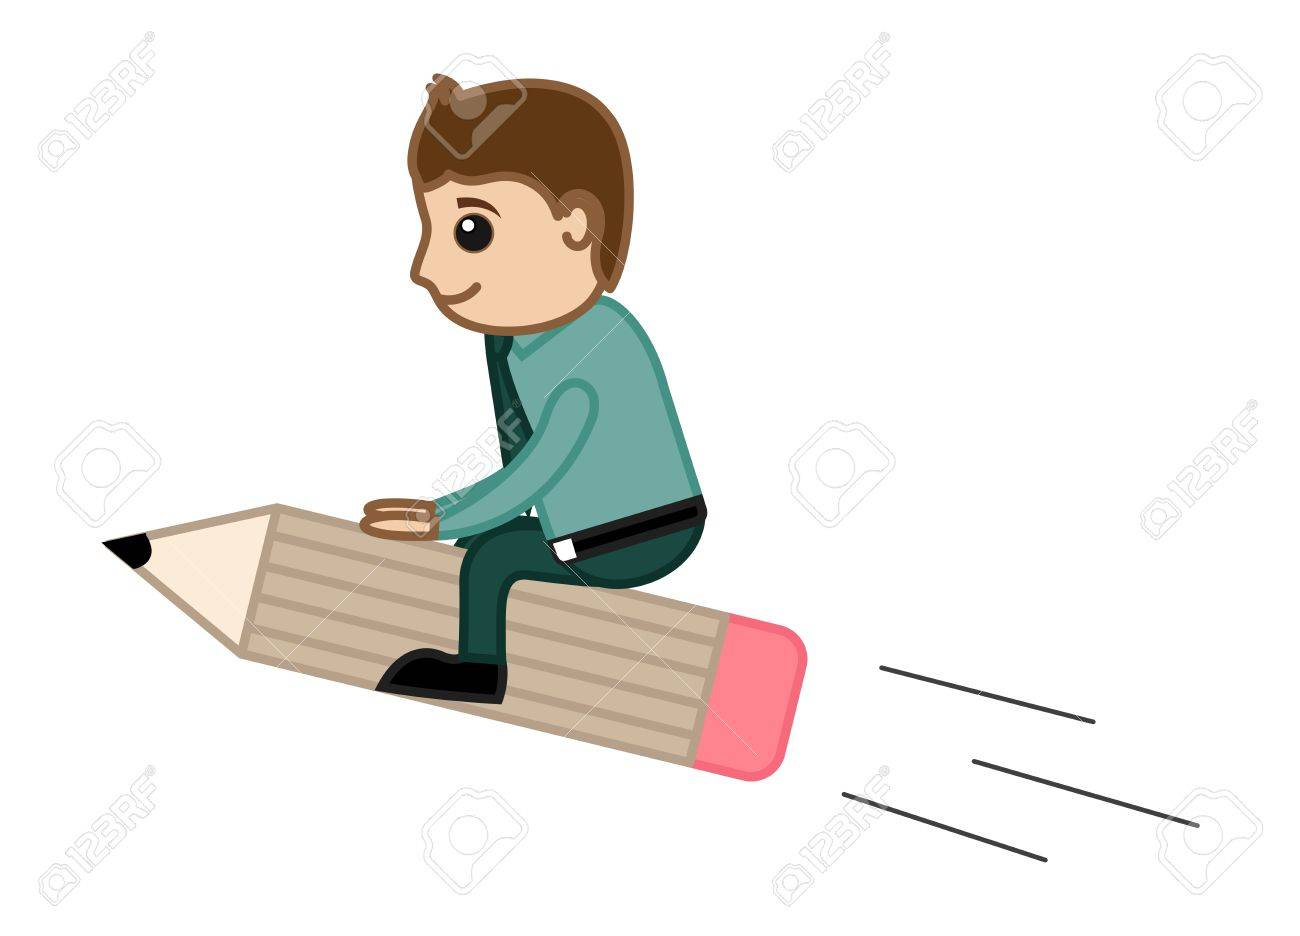 Man Riding on Pencil - Creative Office Character Vectors Stock Vector - 21073919